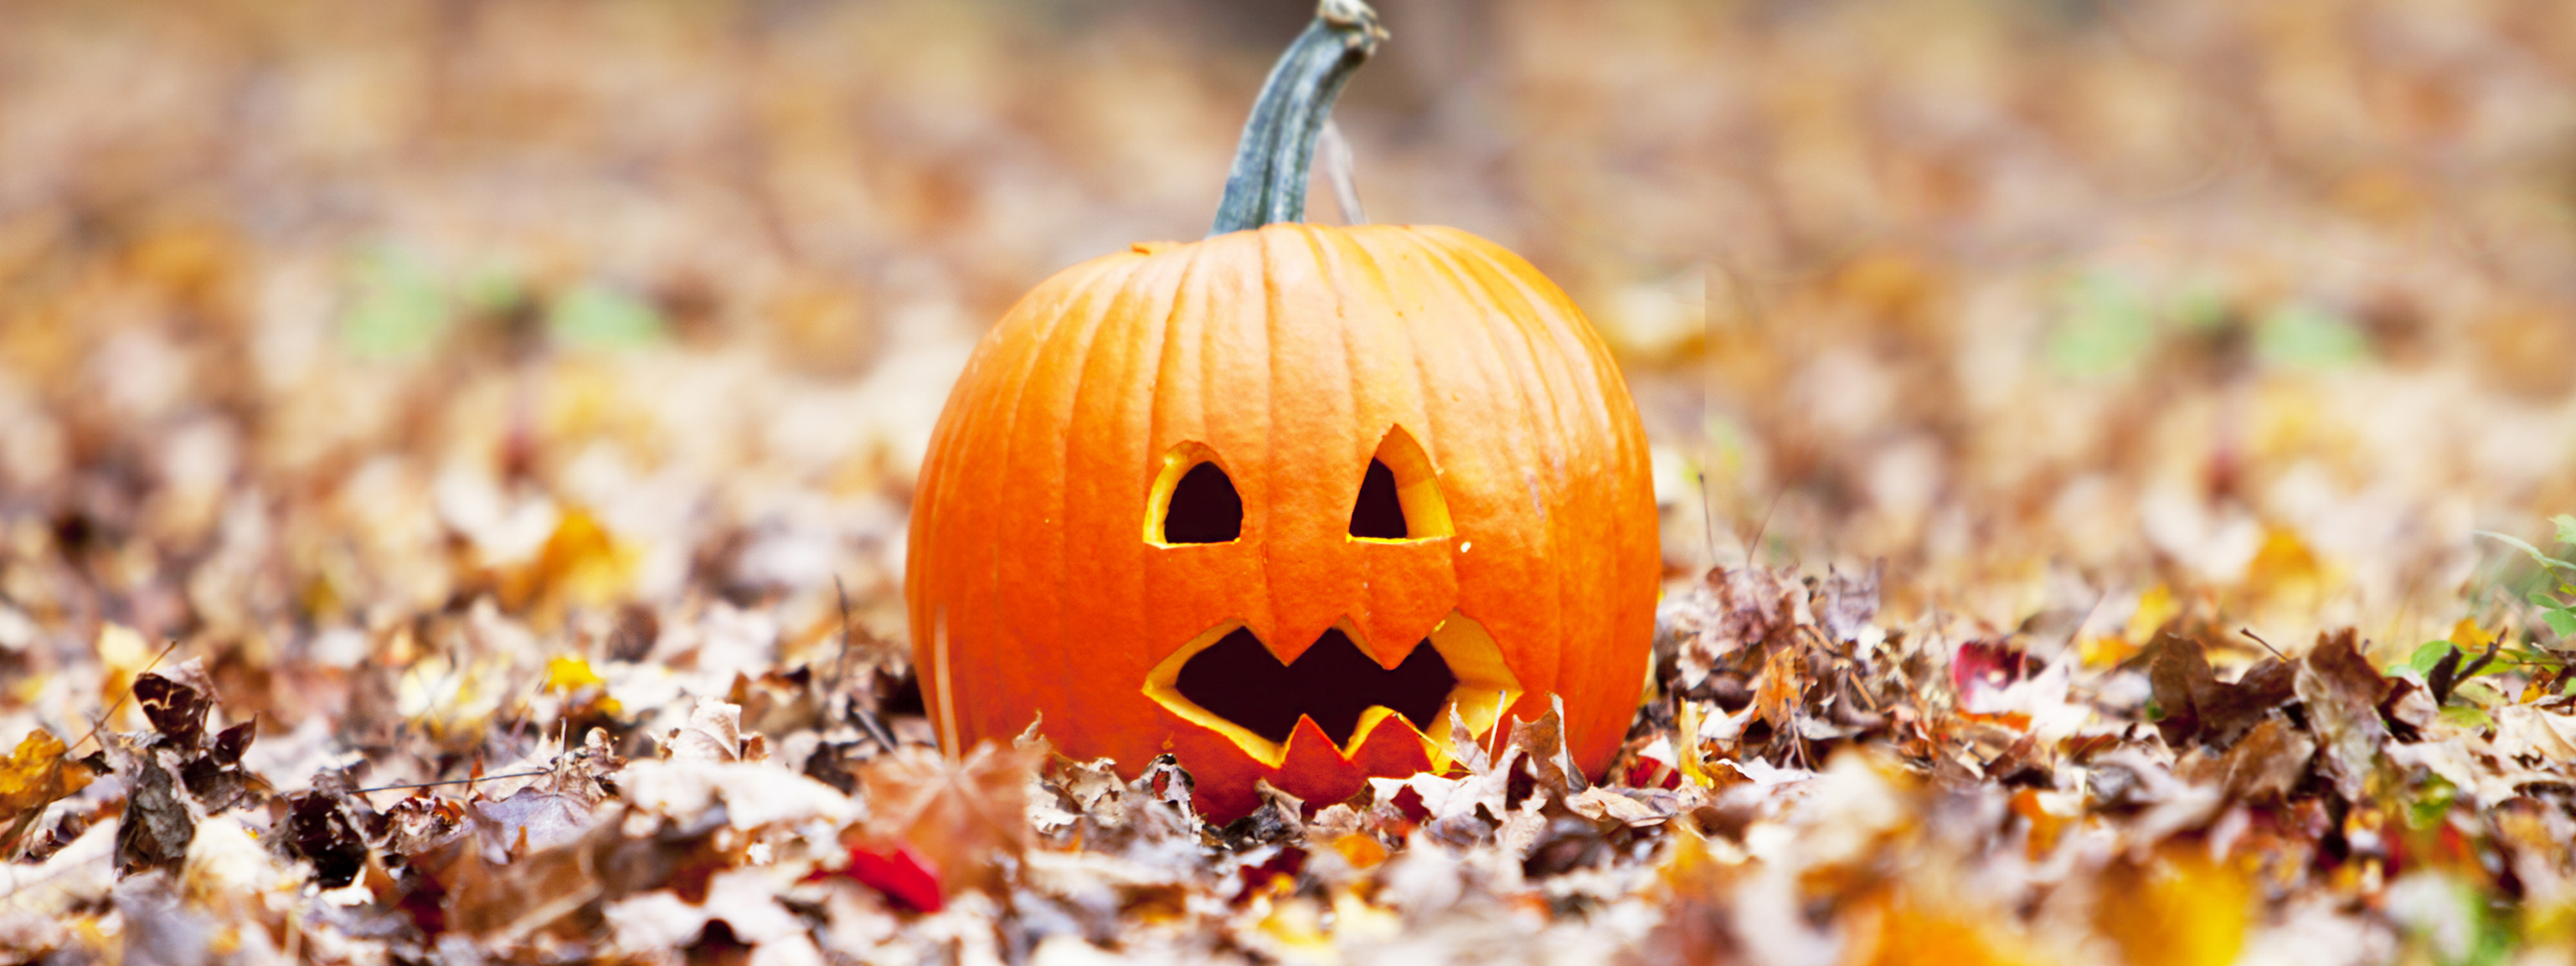 Rainclouds and carved pumpkins – Where is the driest place in the England and Wales in Halloween?